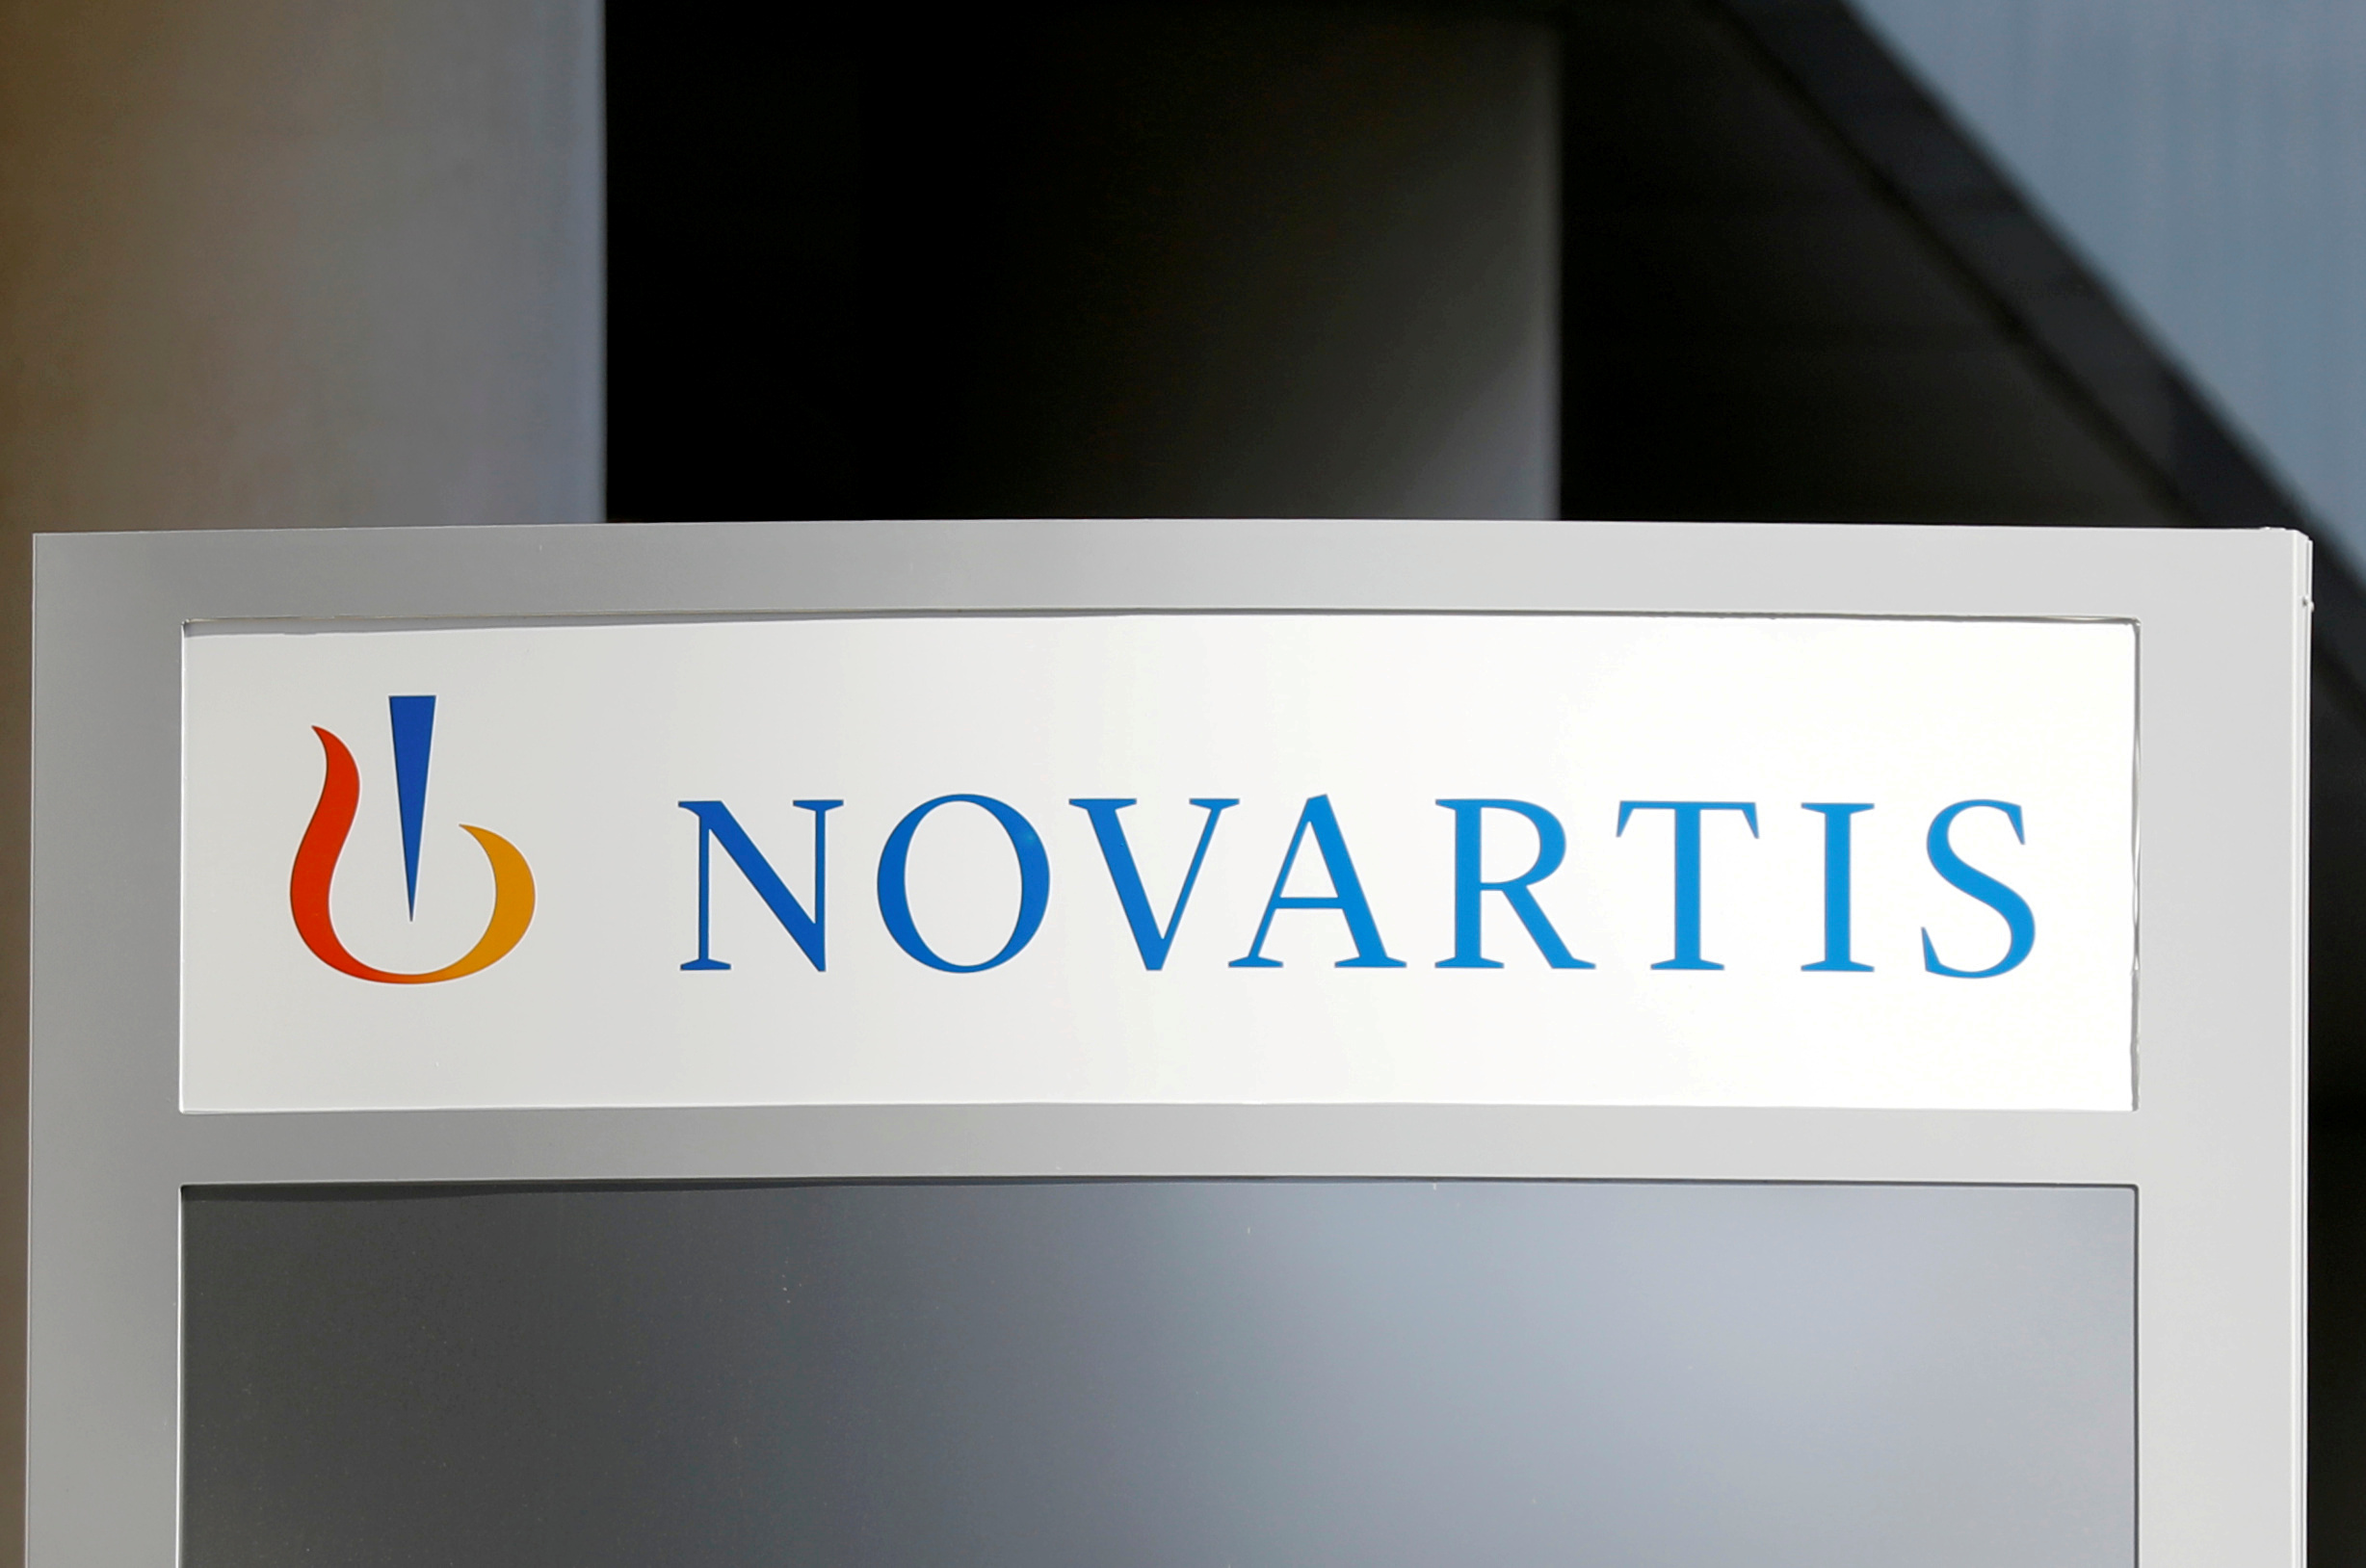 Novartis business plan competition how to write a good guarantee page